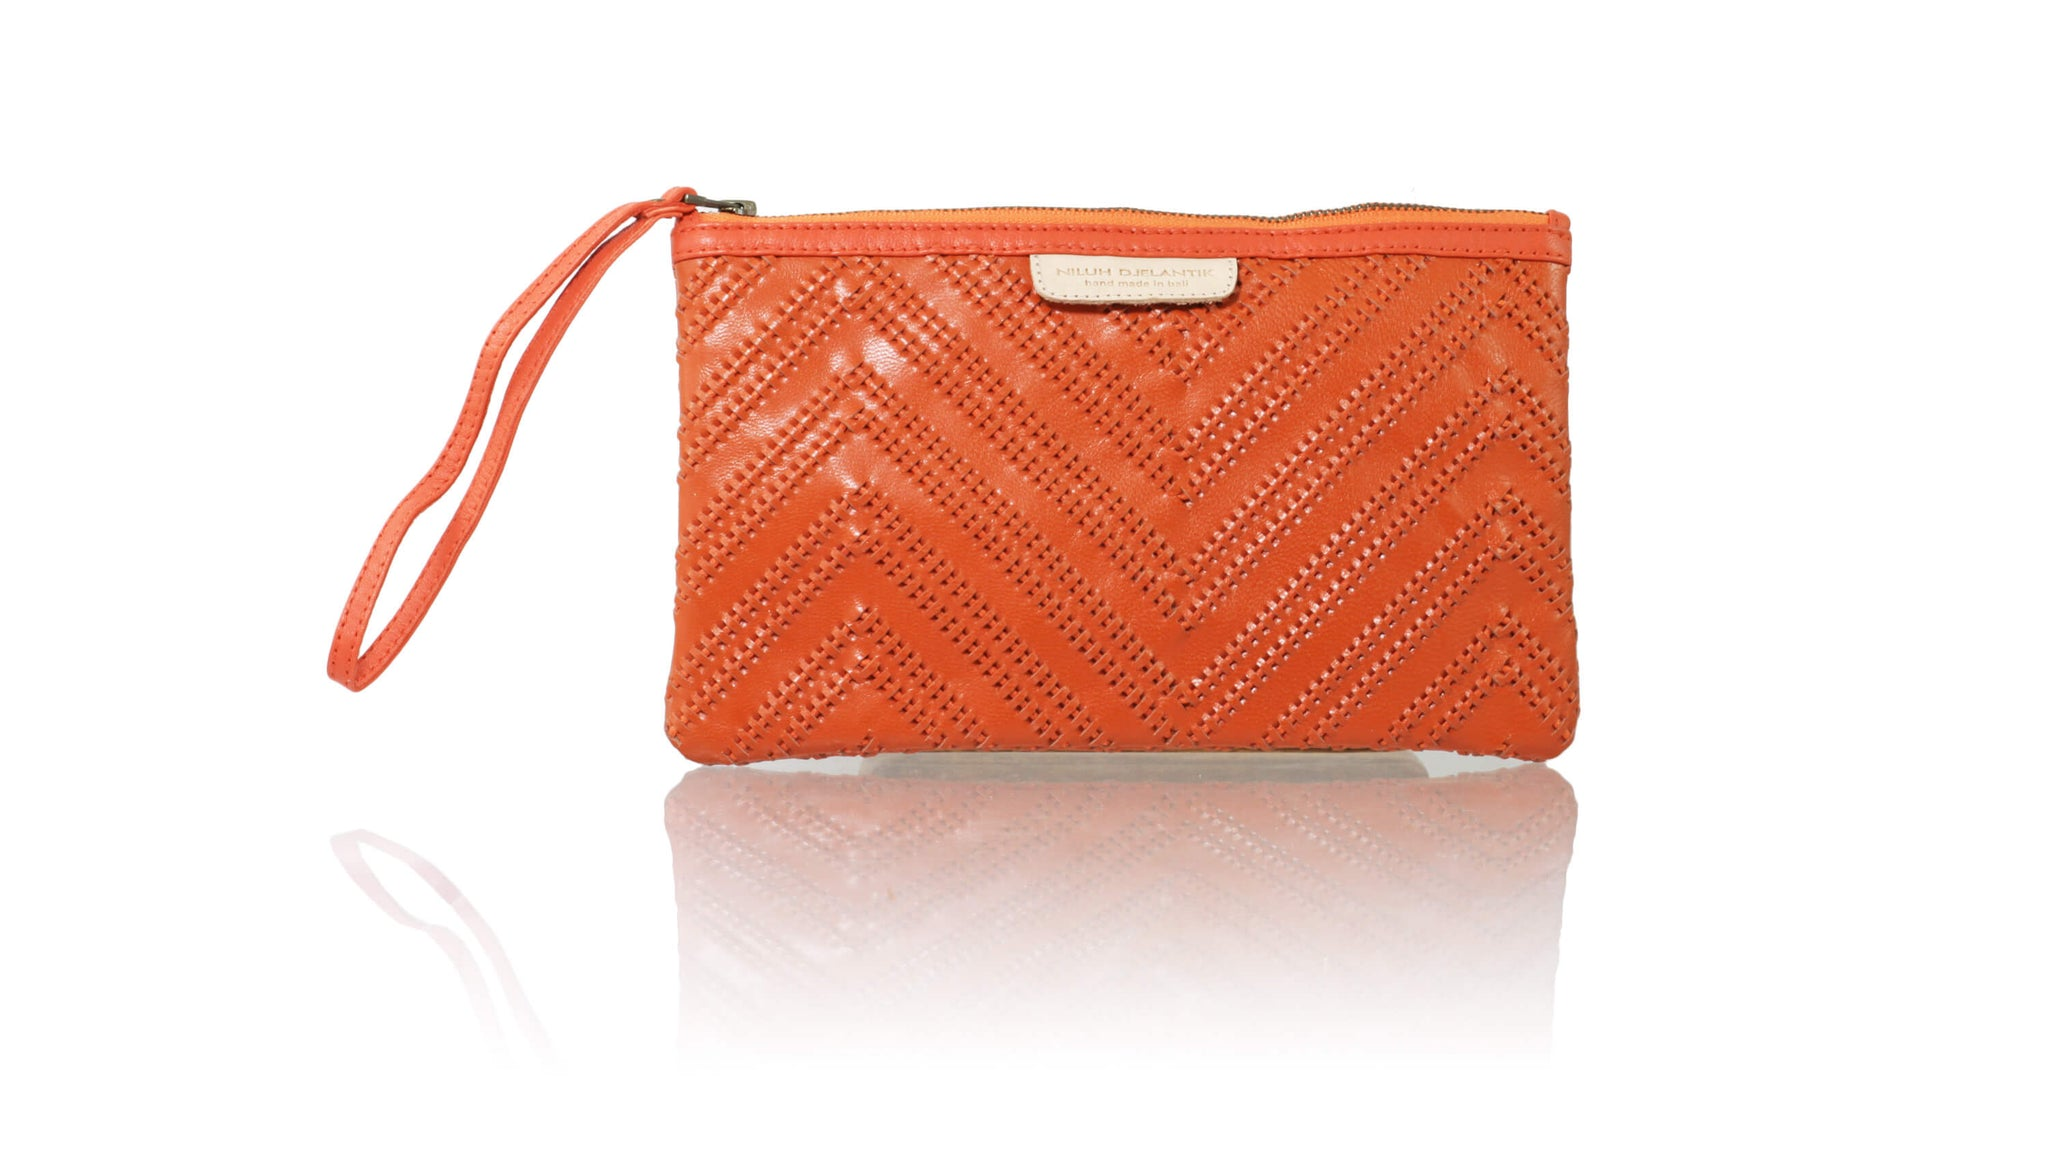 Leather-shoes-Clutch 14 x 23 - Orange Woven Tali-Zipper Clutch-NILUH DJELANTIK-NILUH DJELANTIK